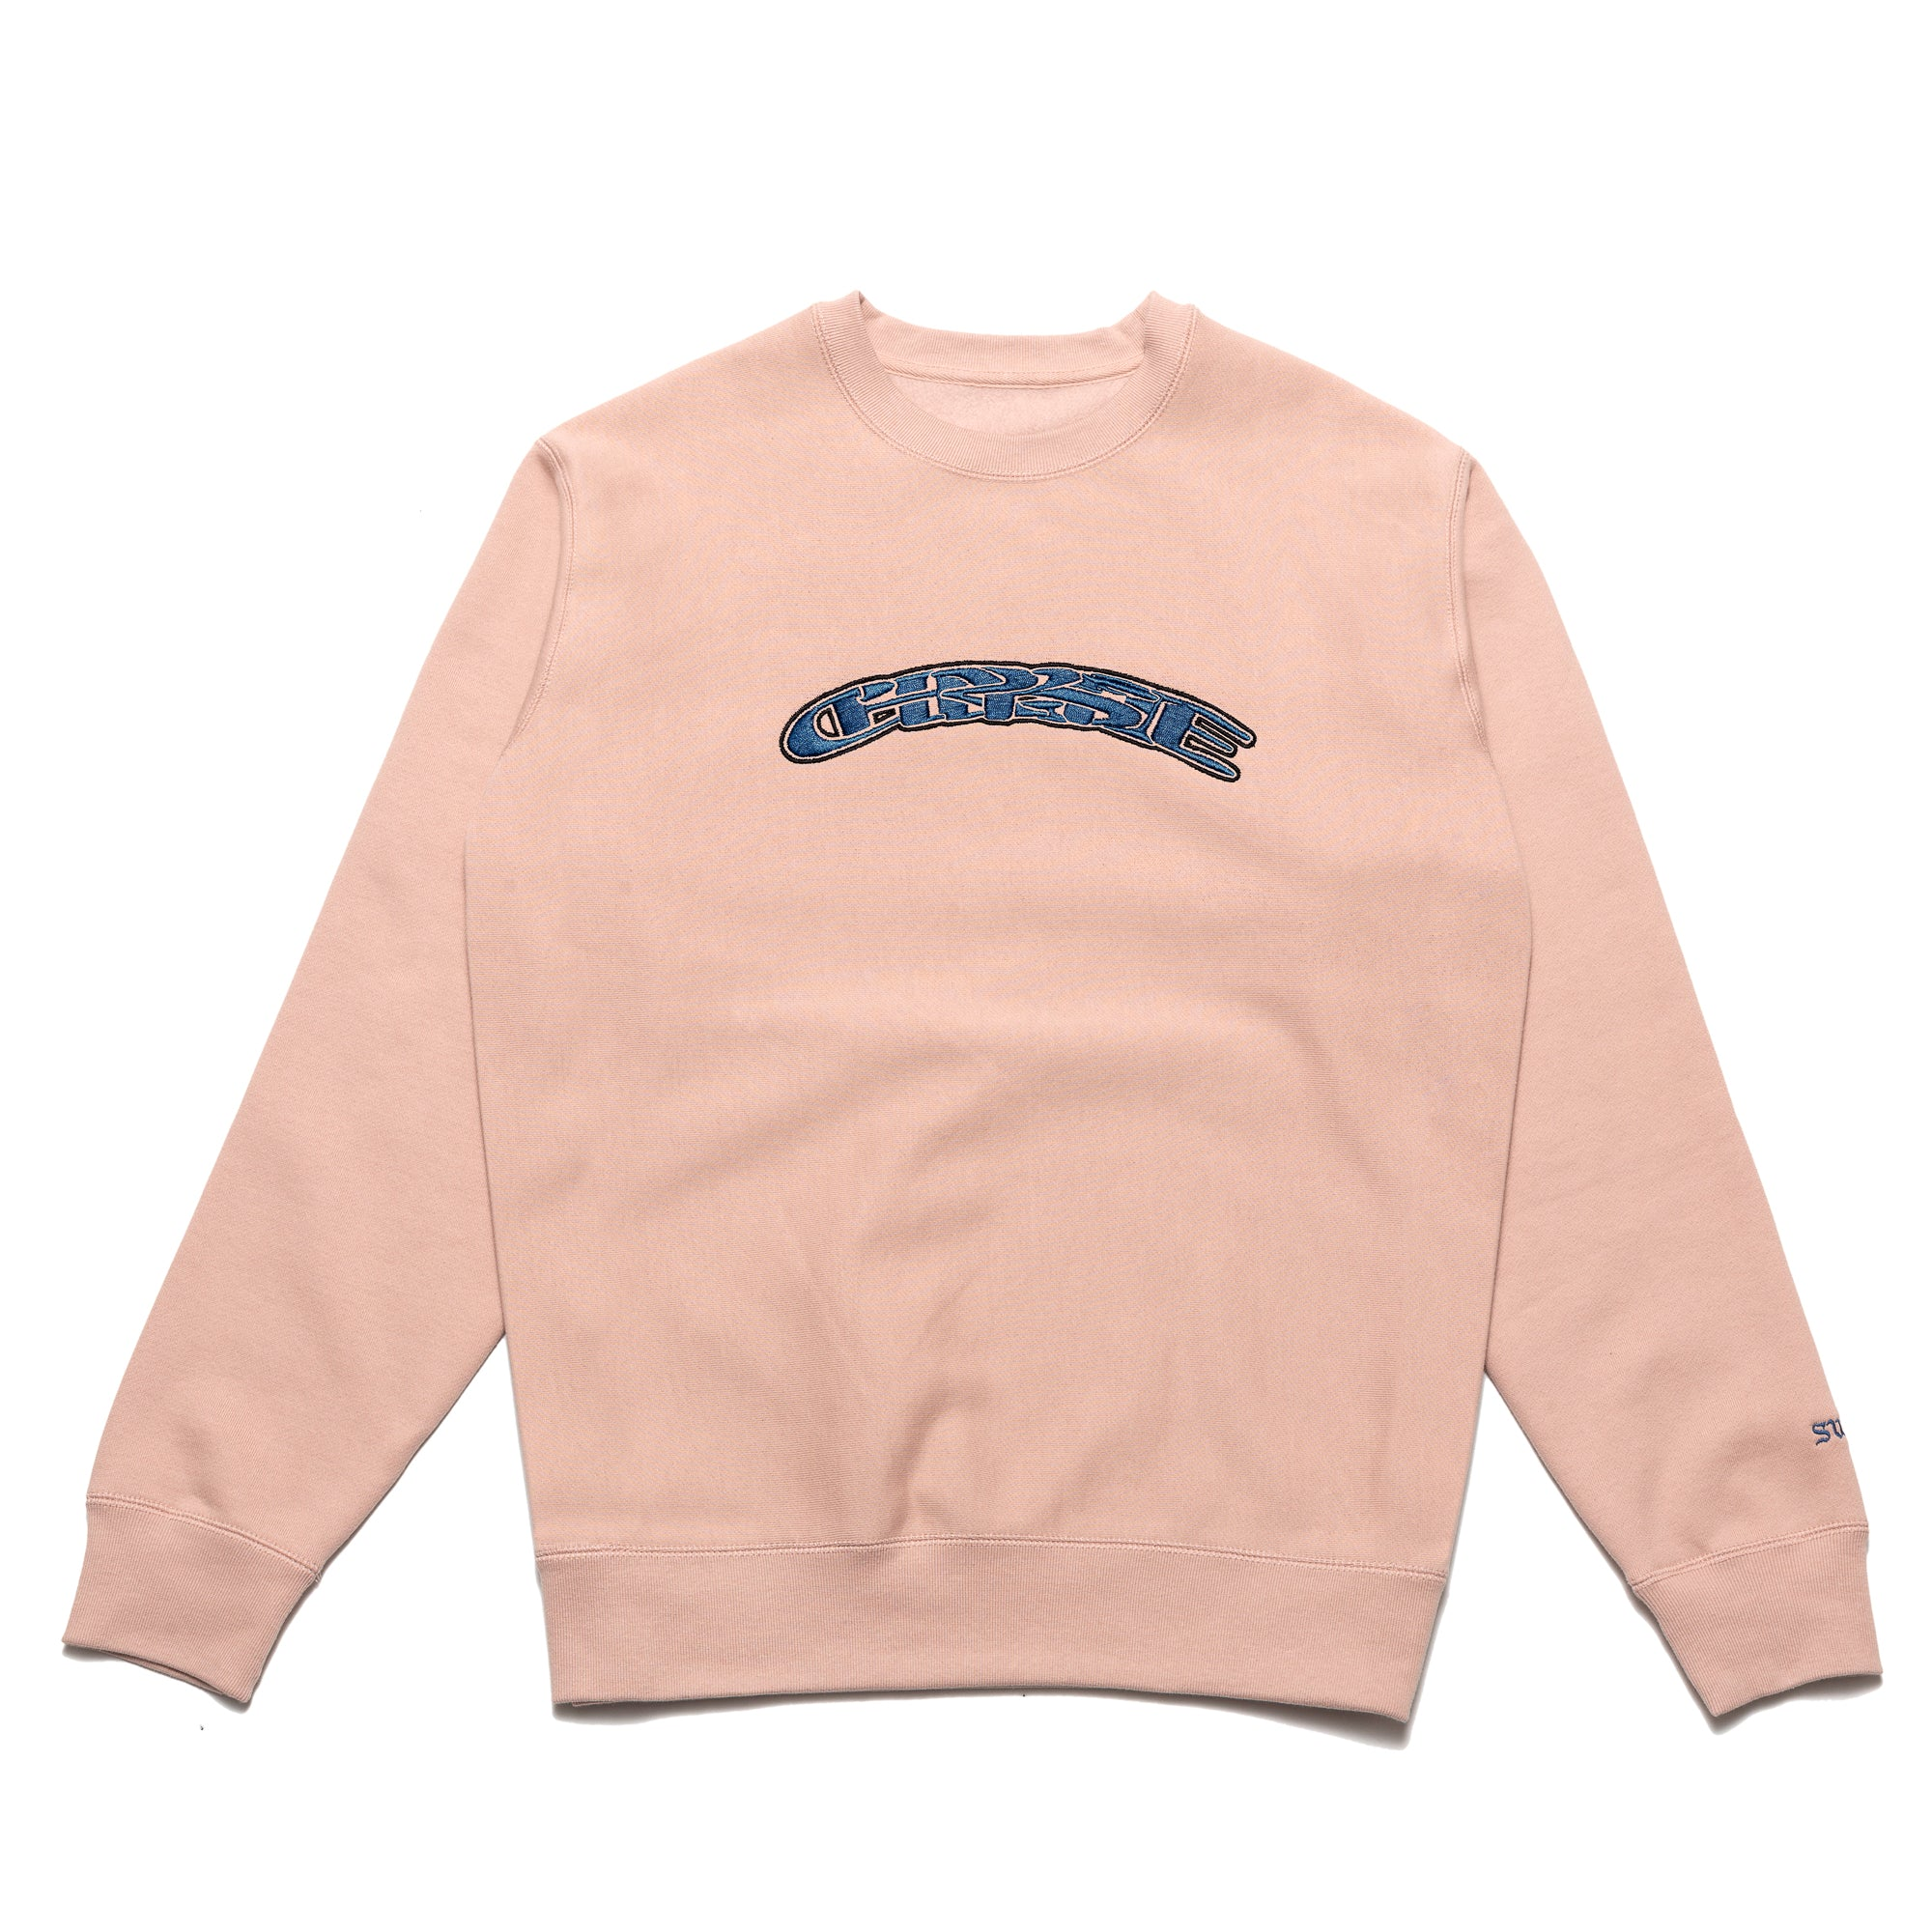 Load image into Gallery viewer, SWFC Twisted logo crewneck / Home Color